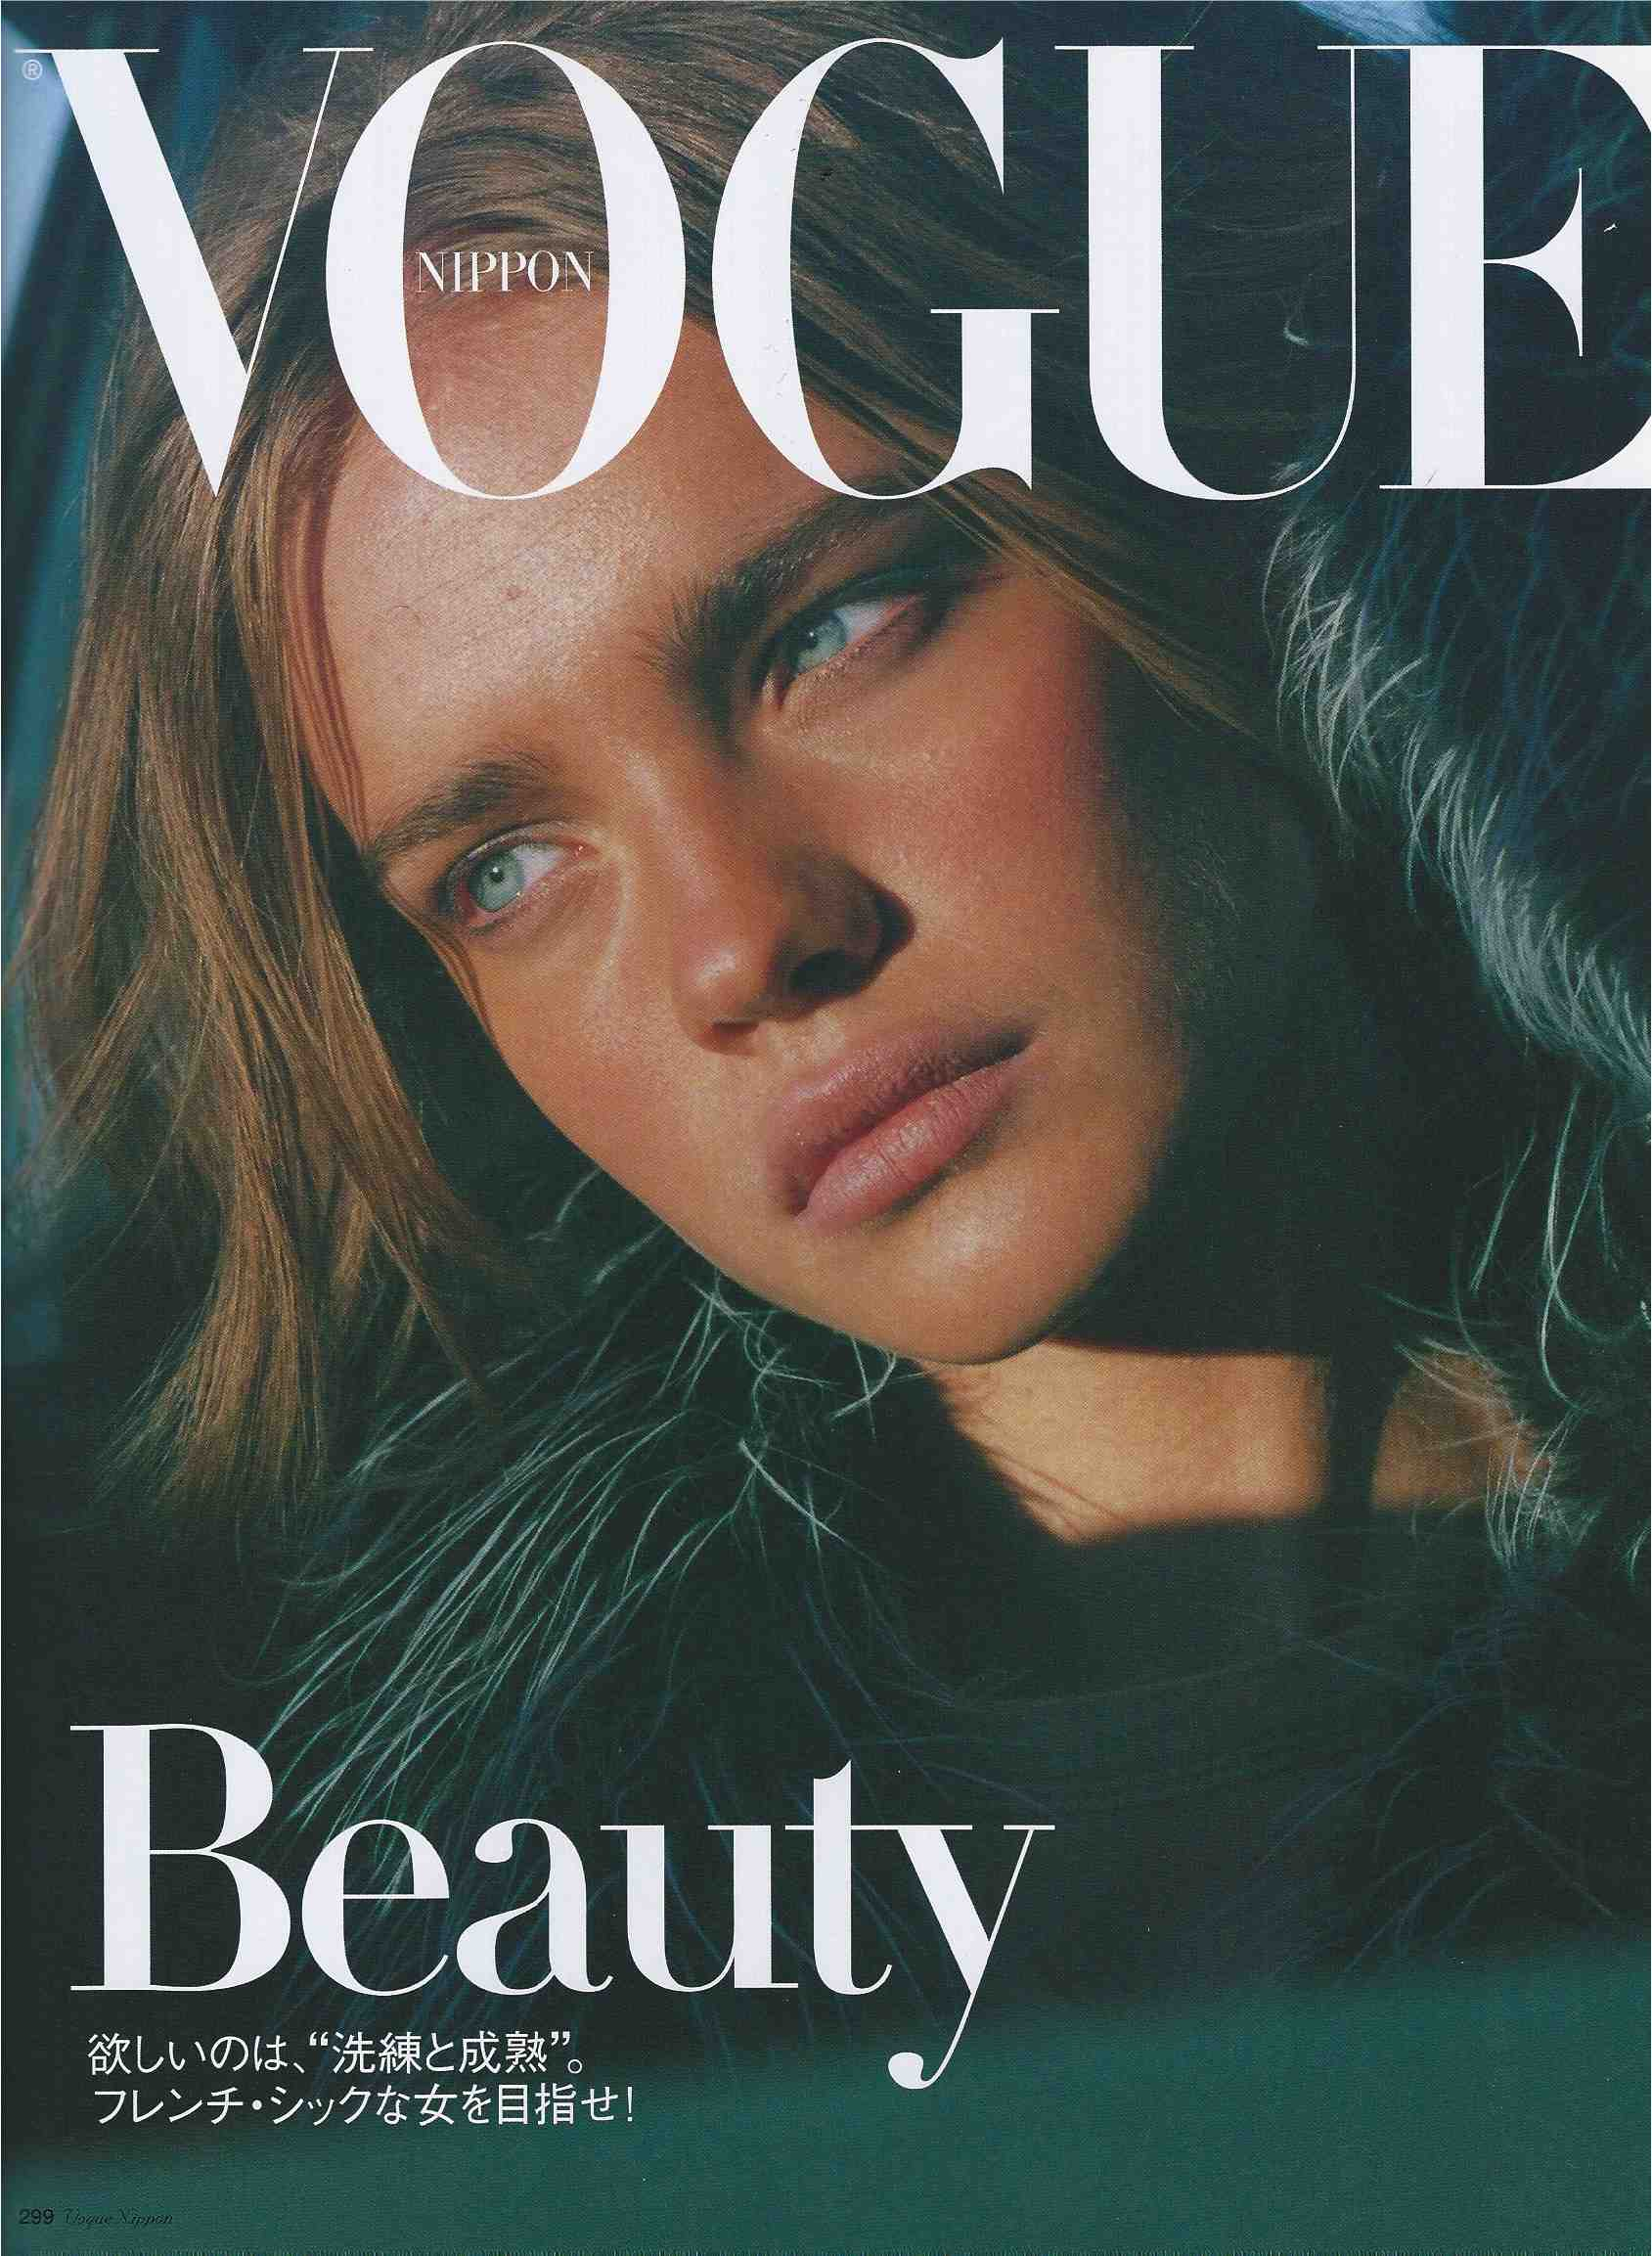 Carter Smith - Japanese Vogue - Natalia Vodianova copy.jpg